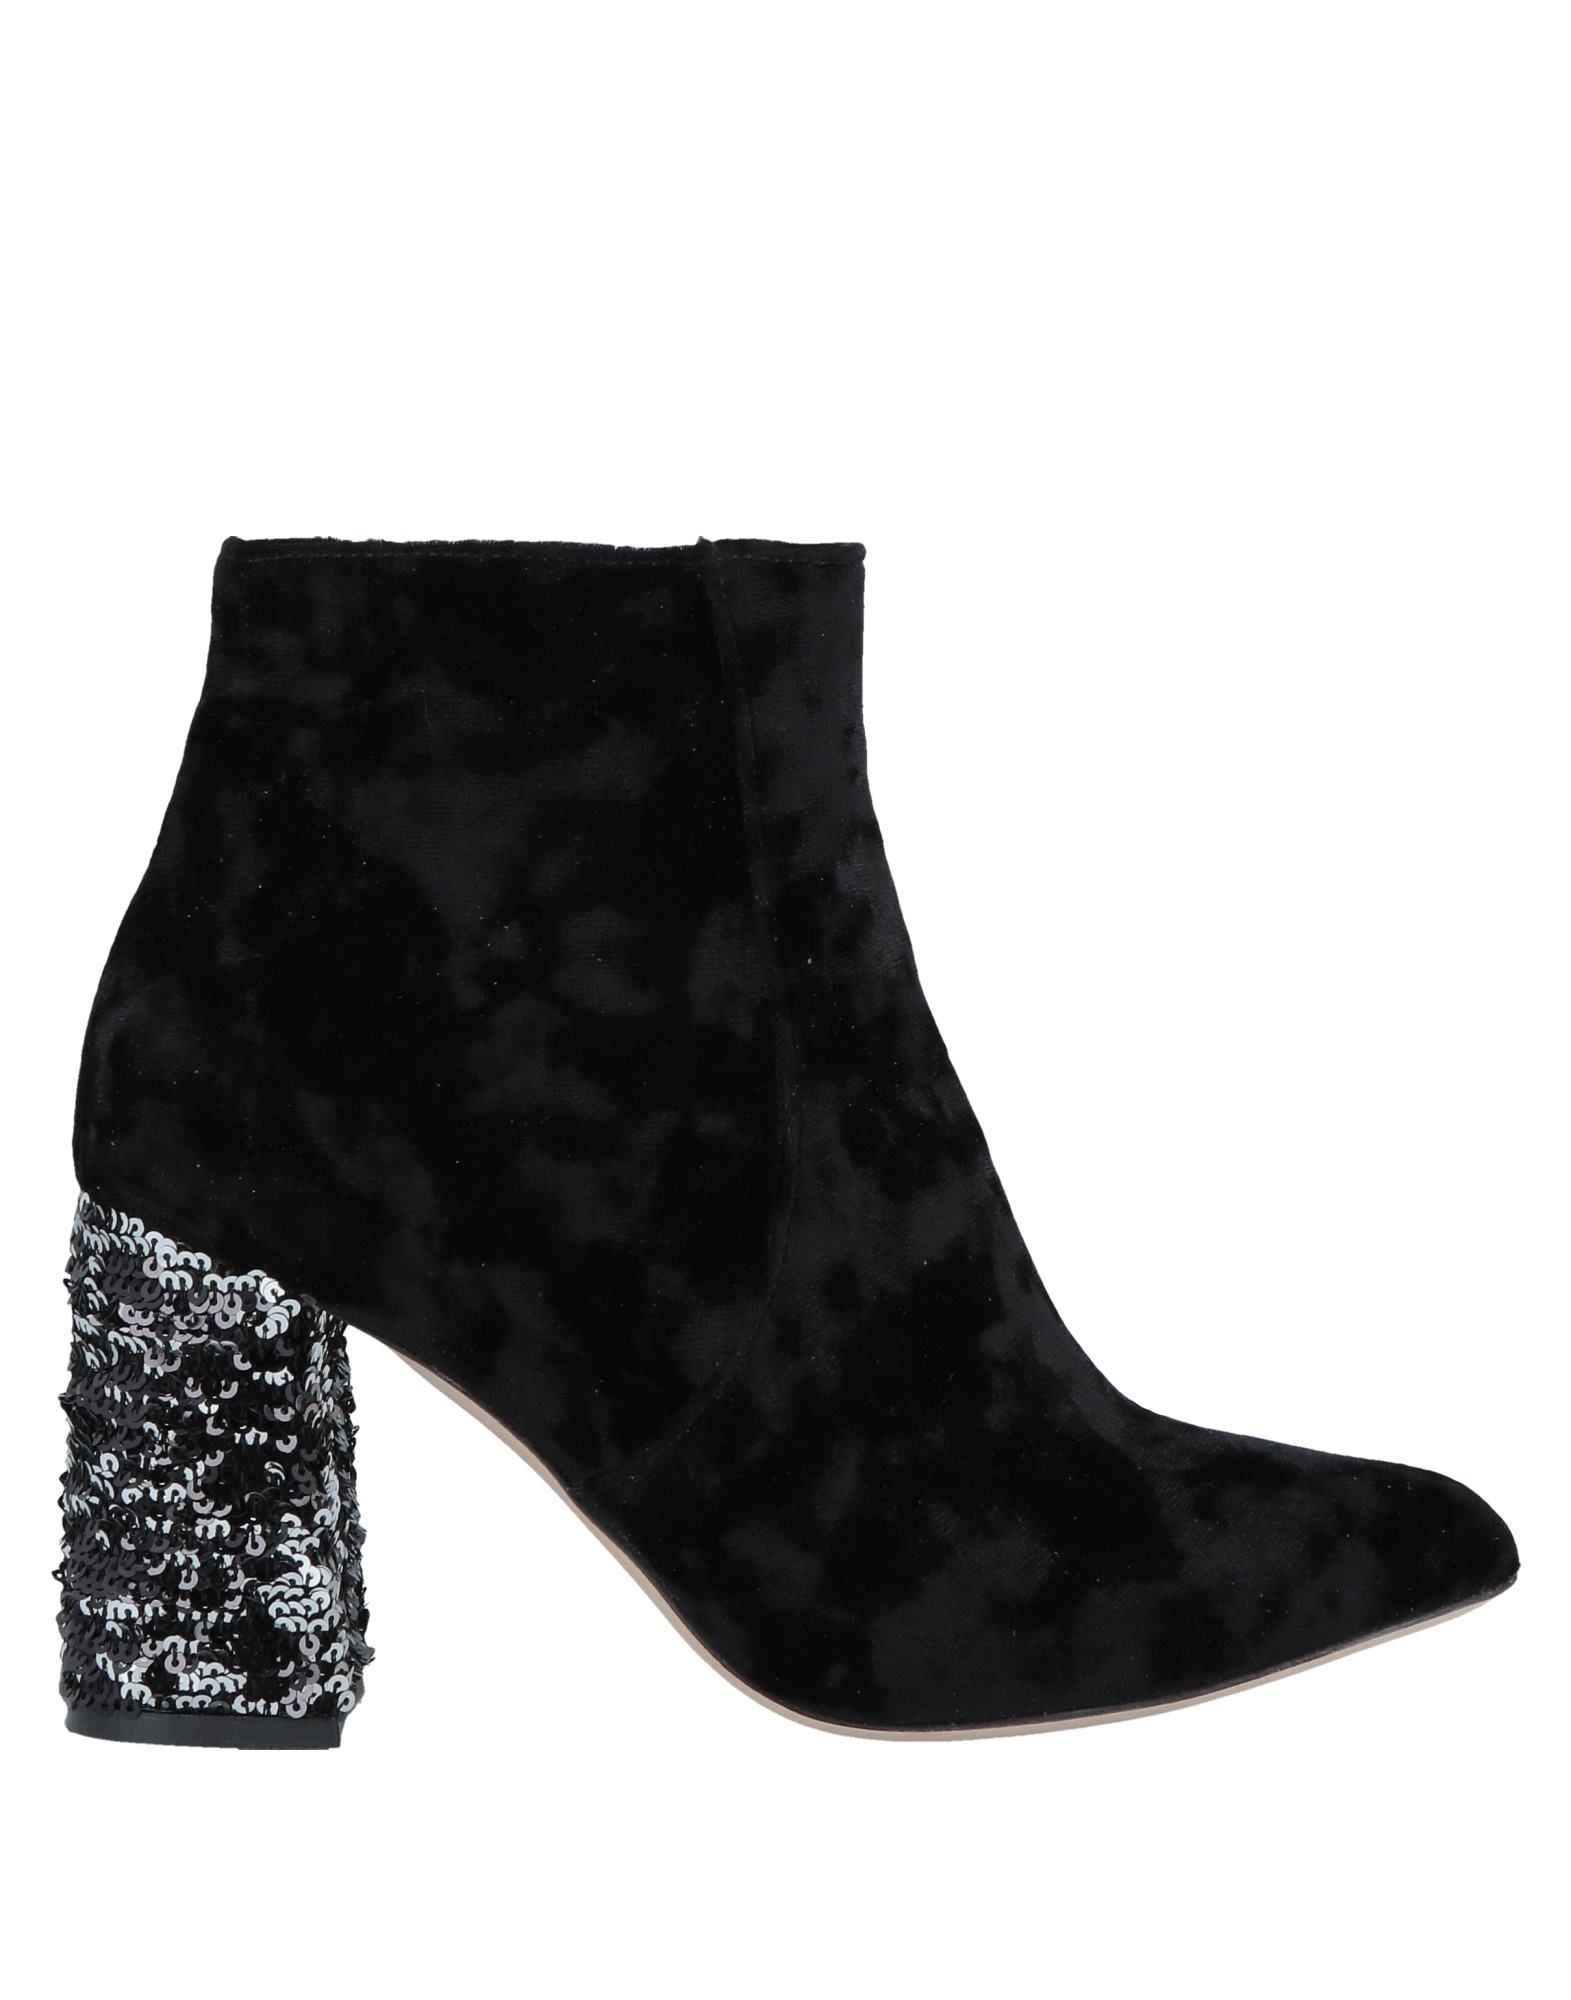 BAMS Ankle Boots in Black